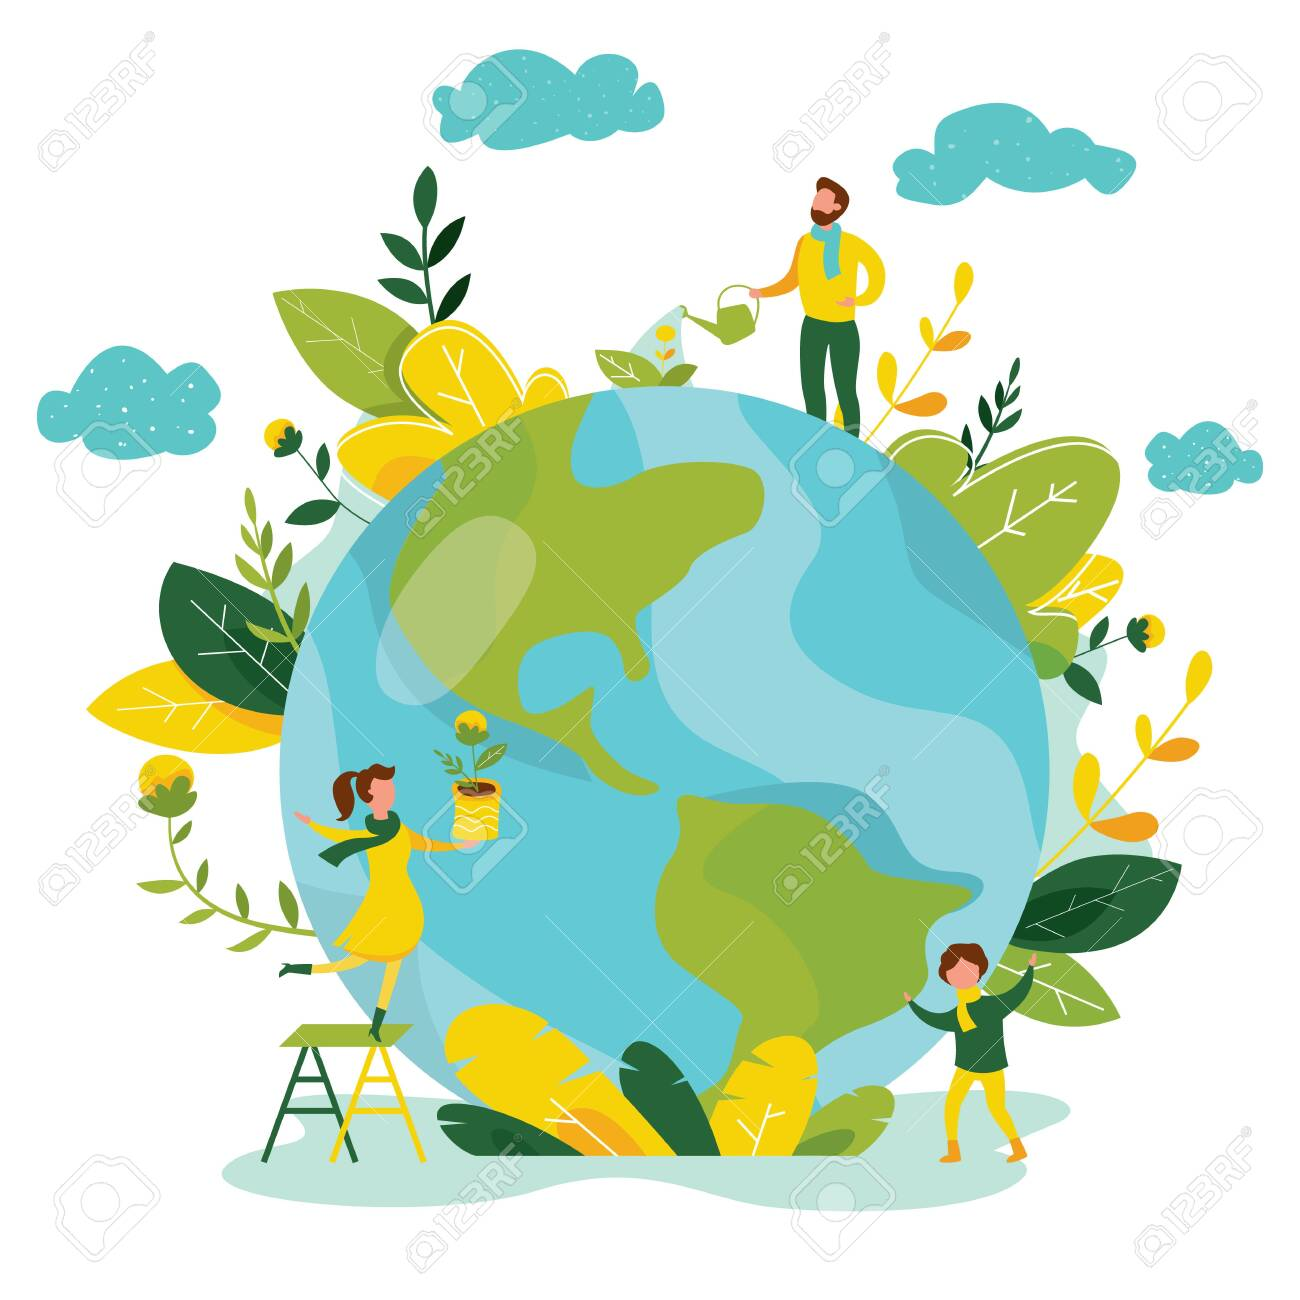 Ecology concept. People take care about planet ecology. Protect nature and ecology banner. Earth day. Globe with trees, plants and volunteer people. Vector illustration. - 134587374